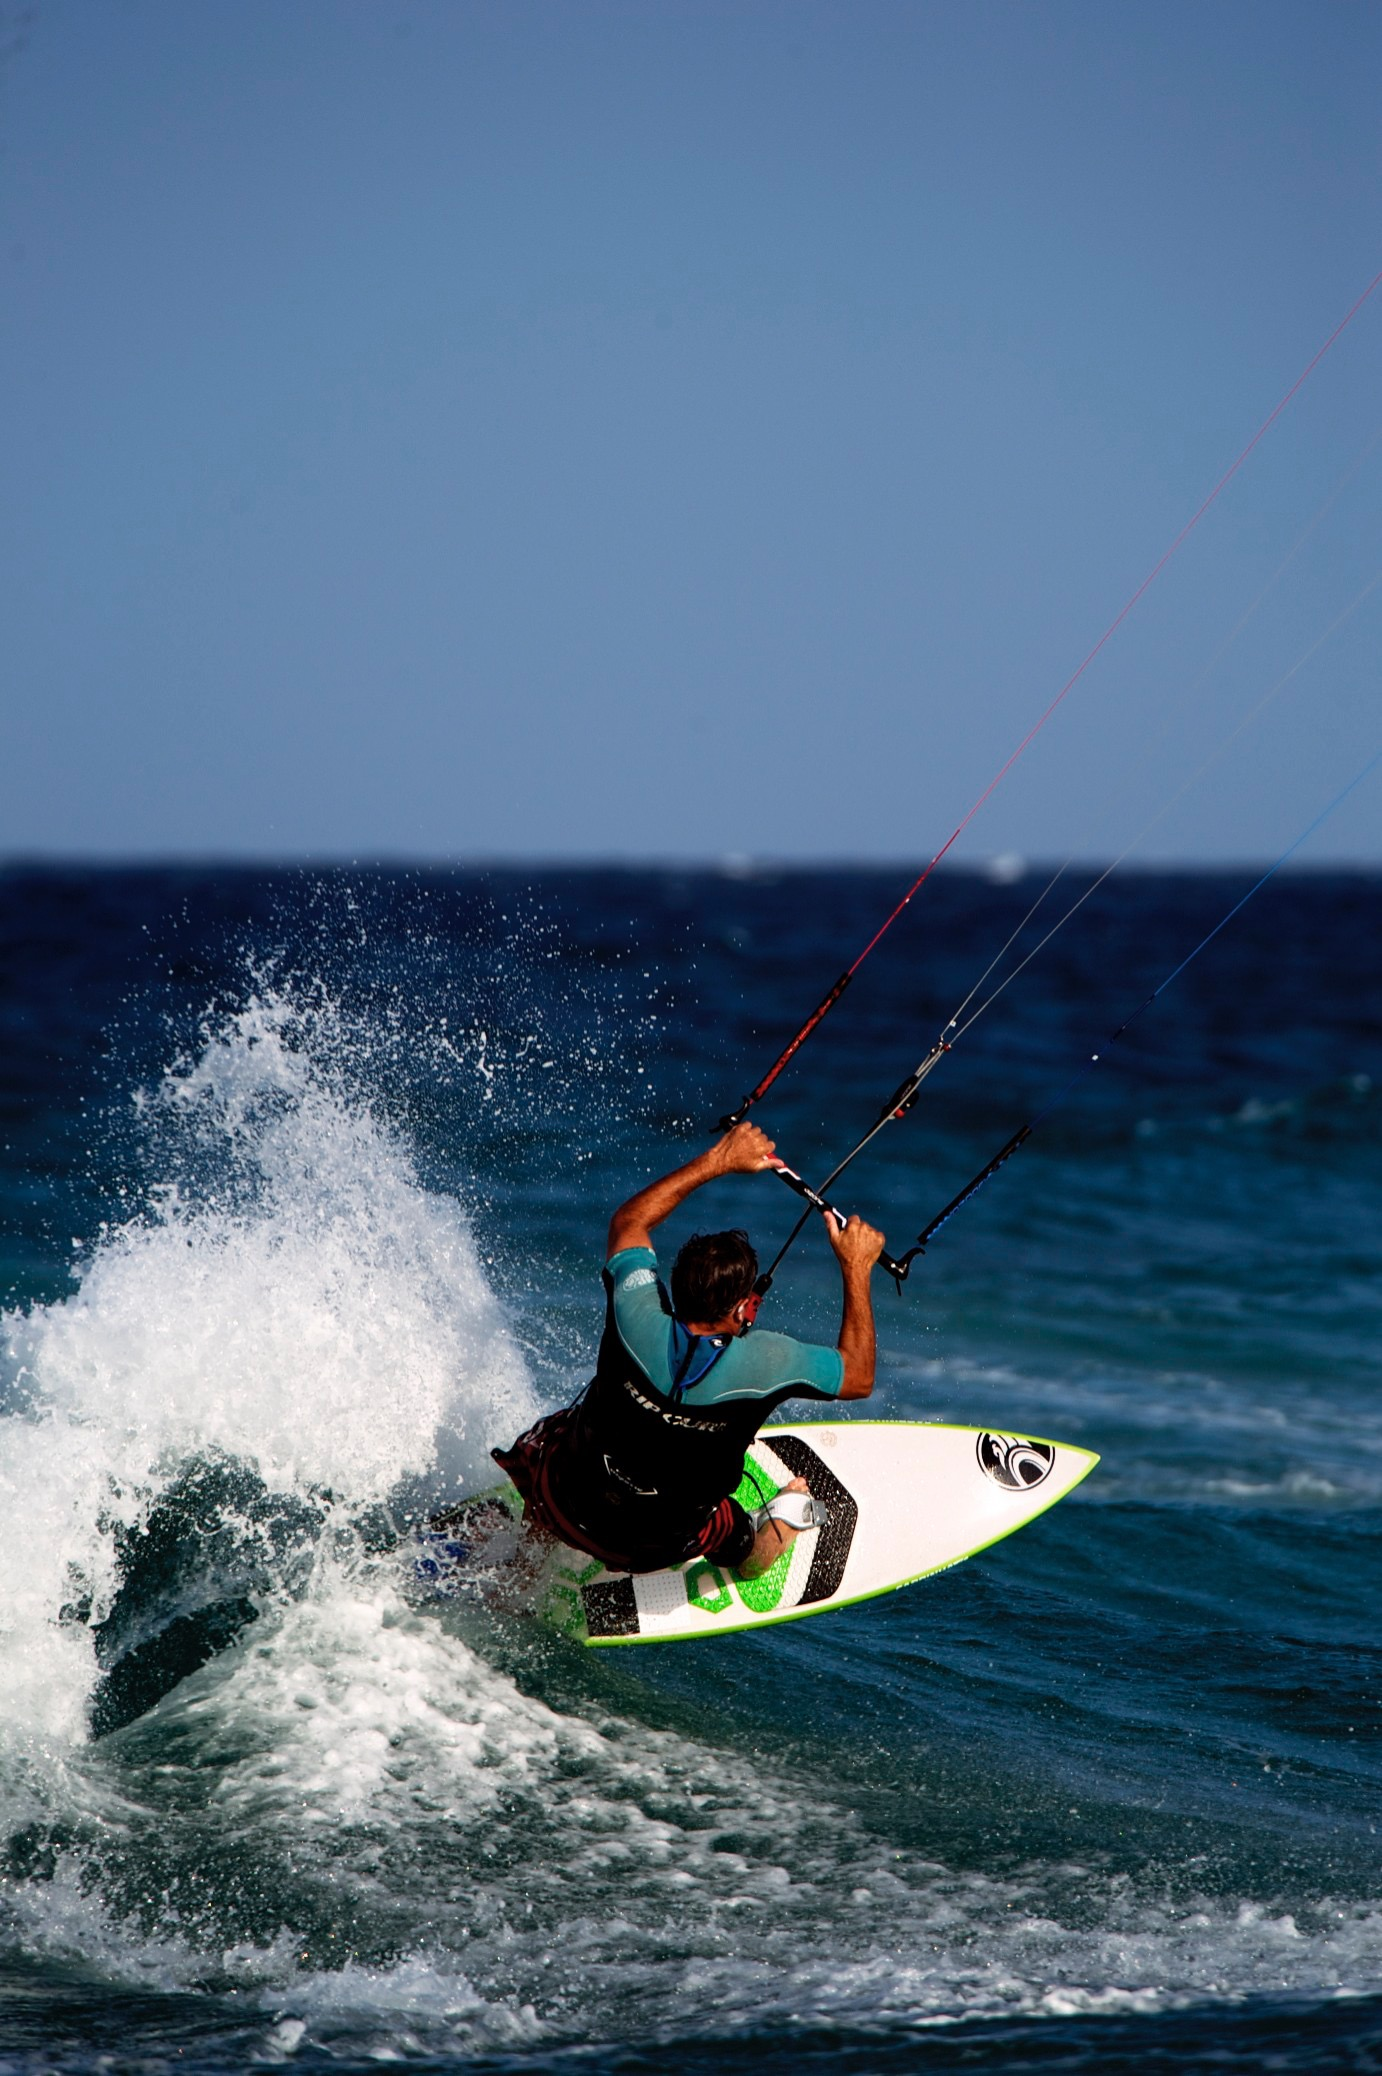 Andy in action in his kitesurfing training business